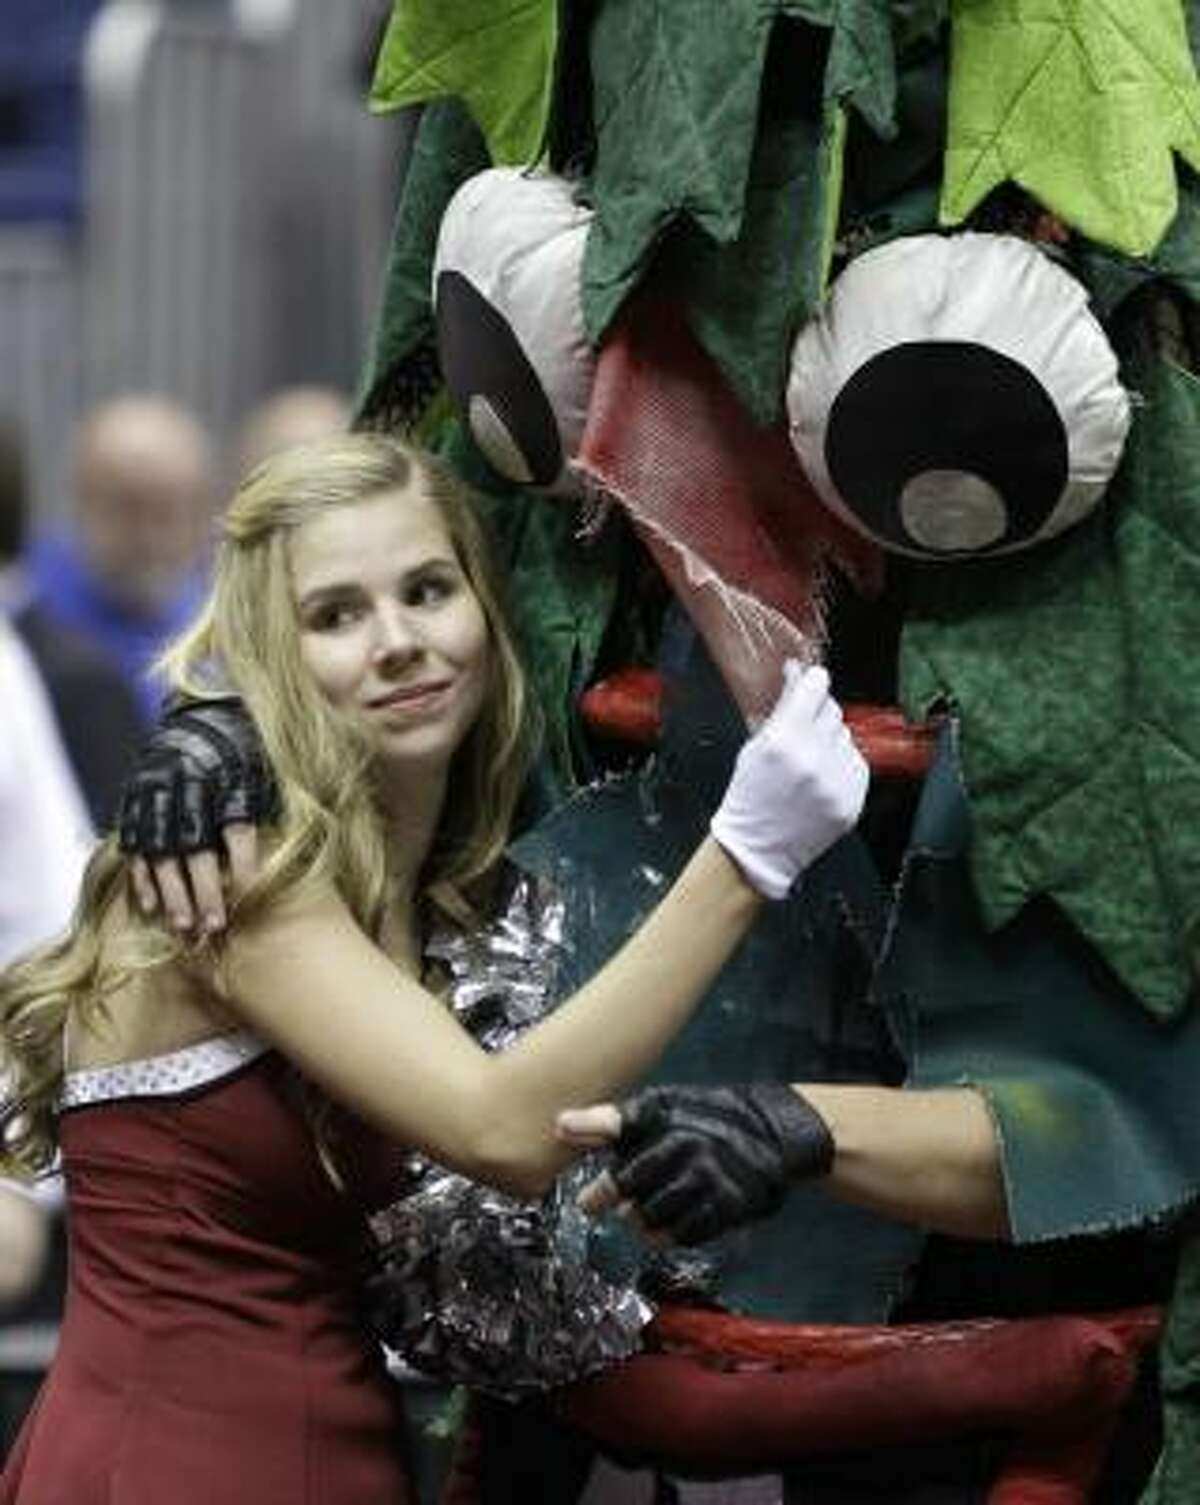 A member of the Stanford cheerleaders hugs the team mascot before the start of the women's NCAA Final Four championship game against Connecticut on Tuesday, April 6 in San Antonio.